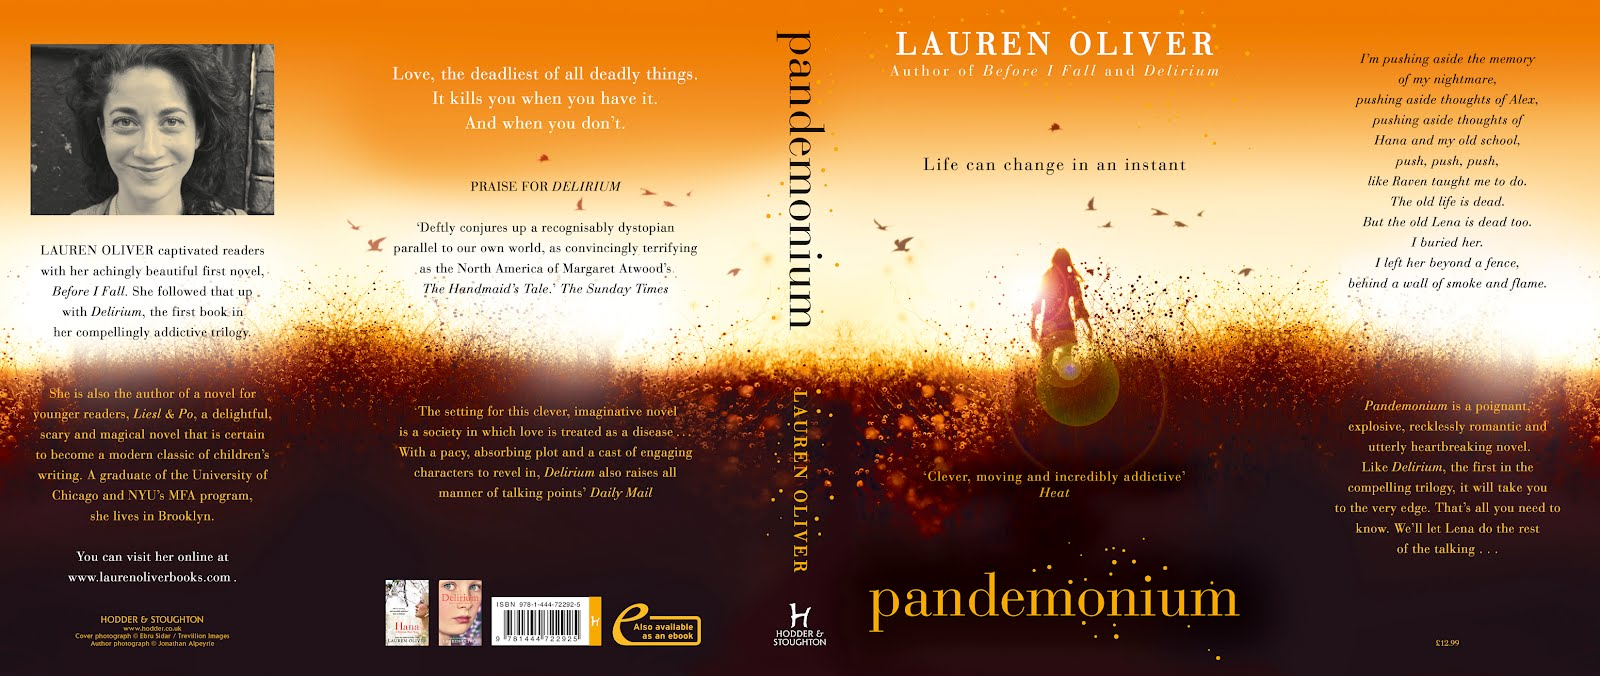 Book Cover Portadas Hd ~ Pandemonium images book cover hd wallpaper and